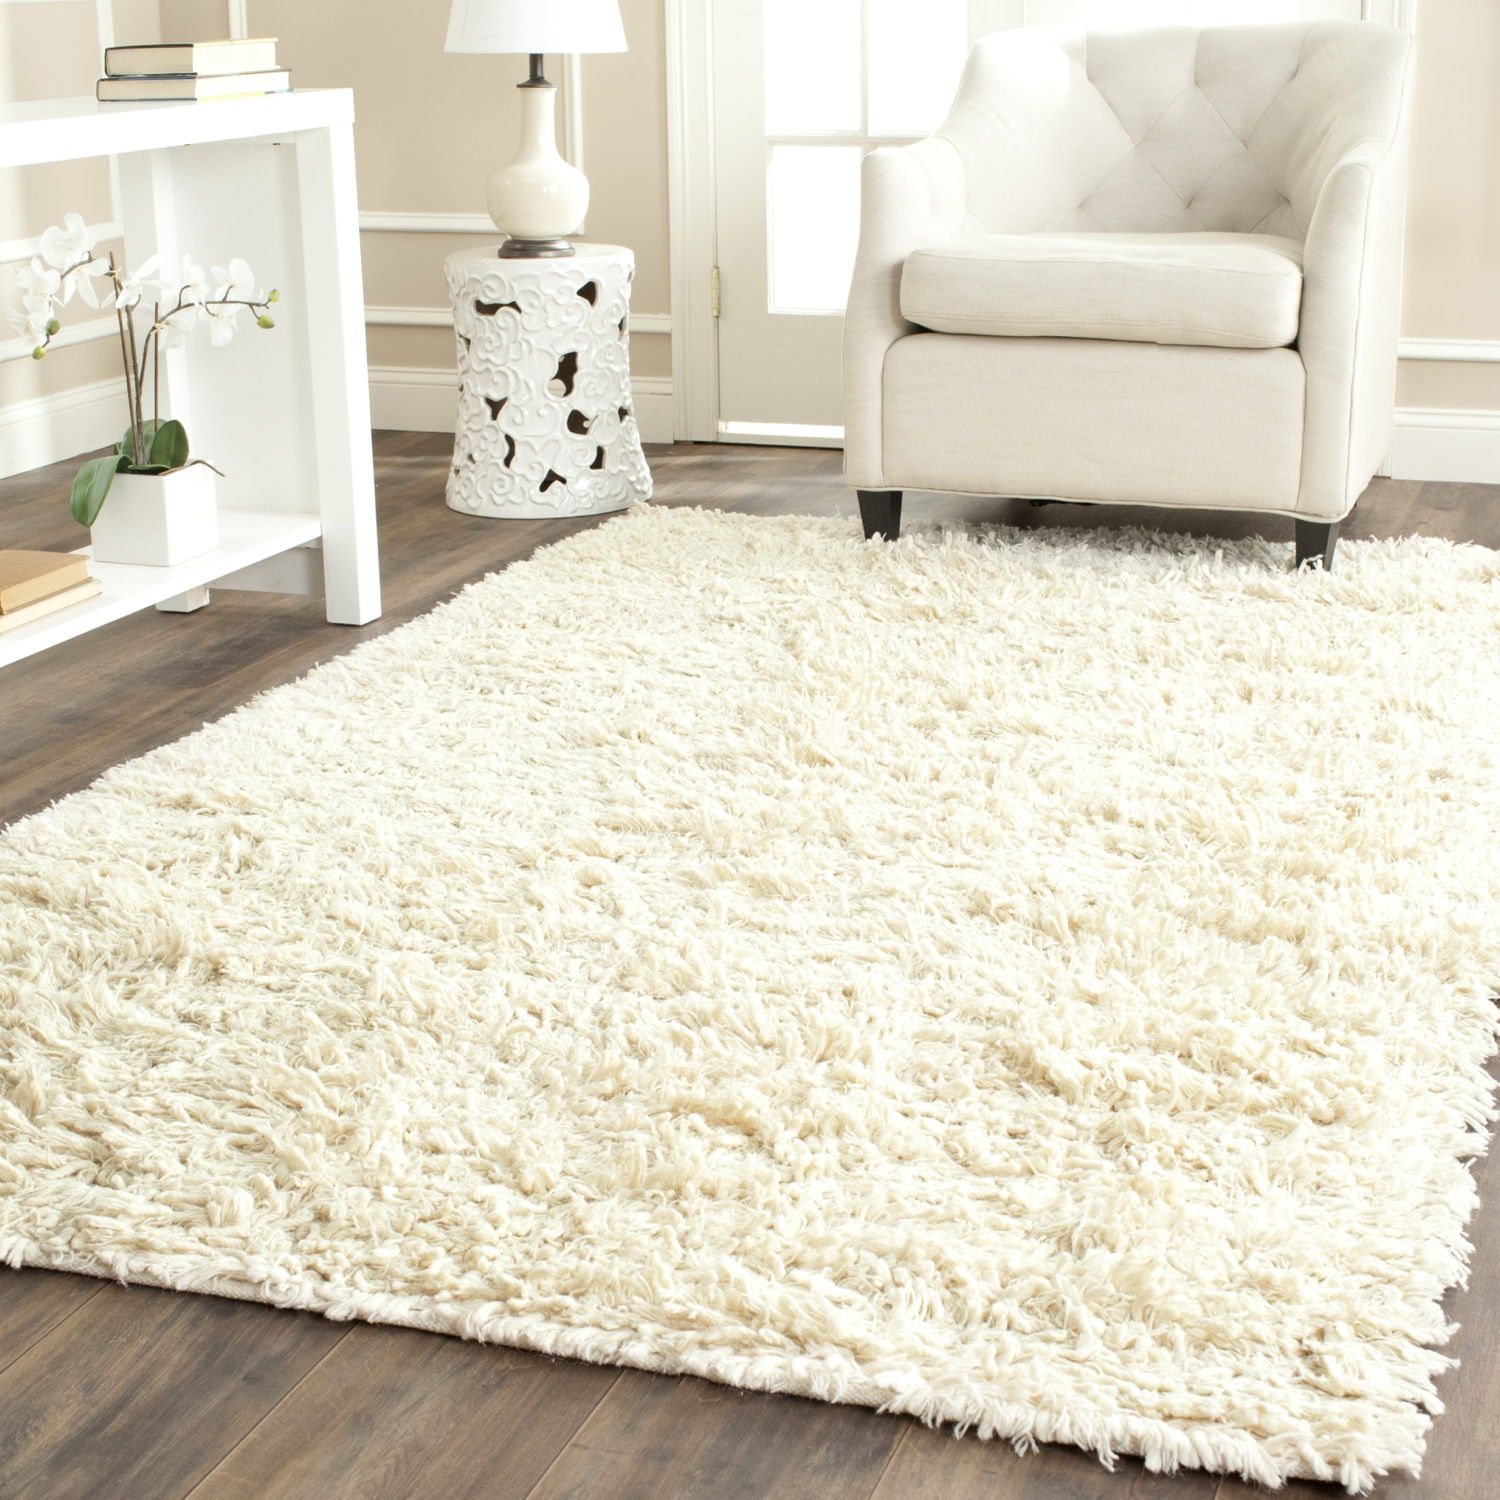 wool area rugs safavieh-hand-tufted-ivory-plush-shag-wool-area- KQGJBNR